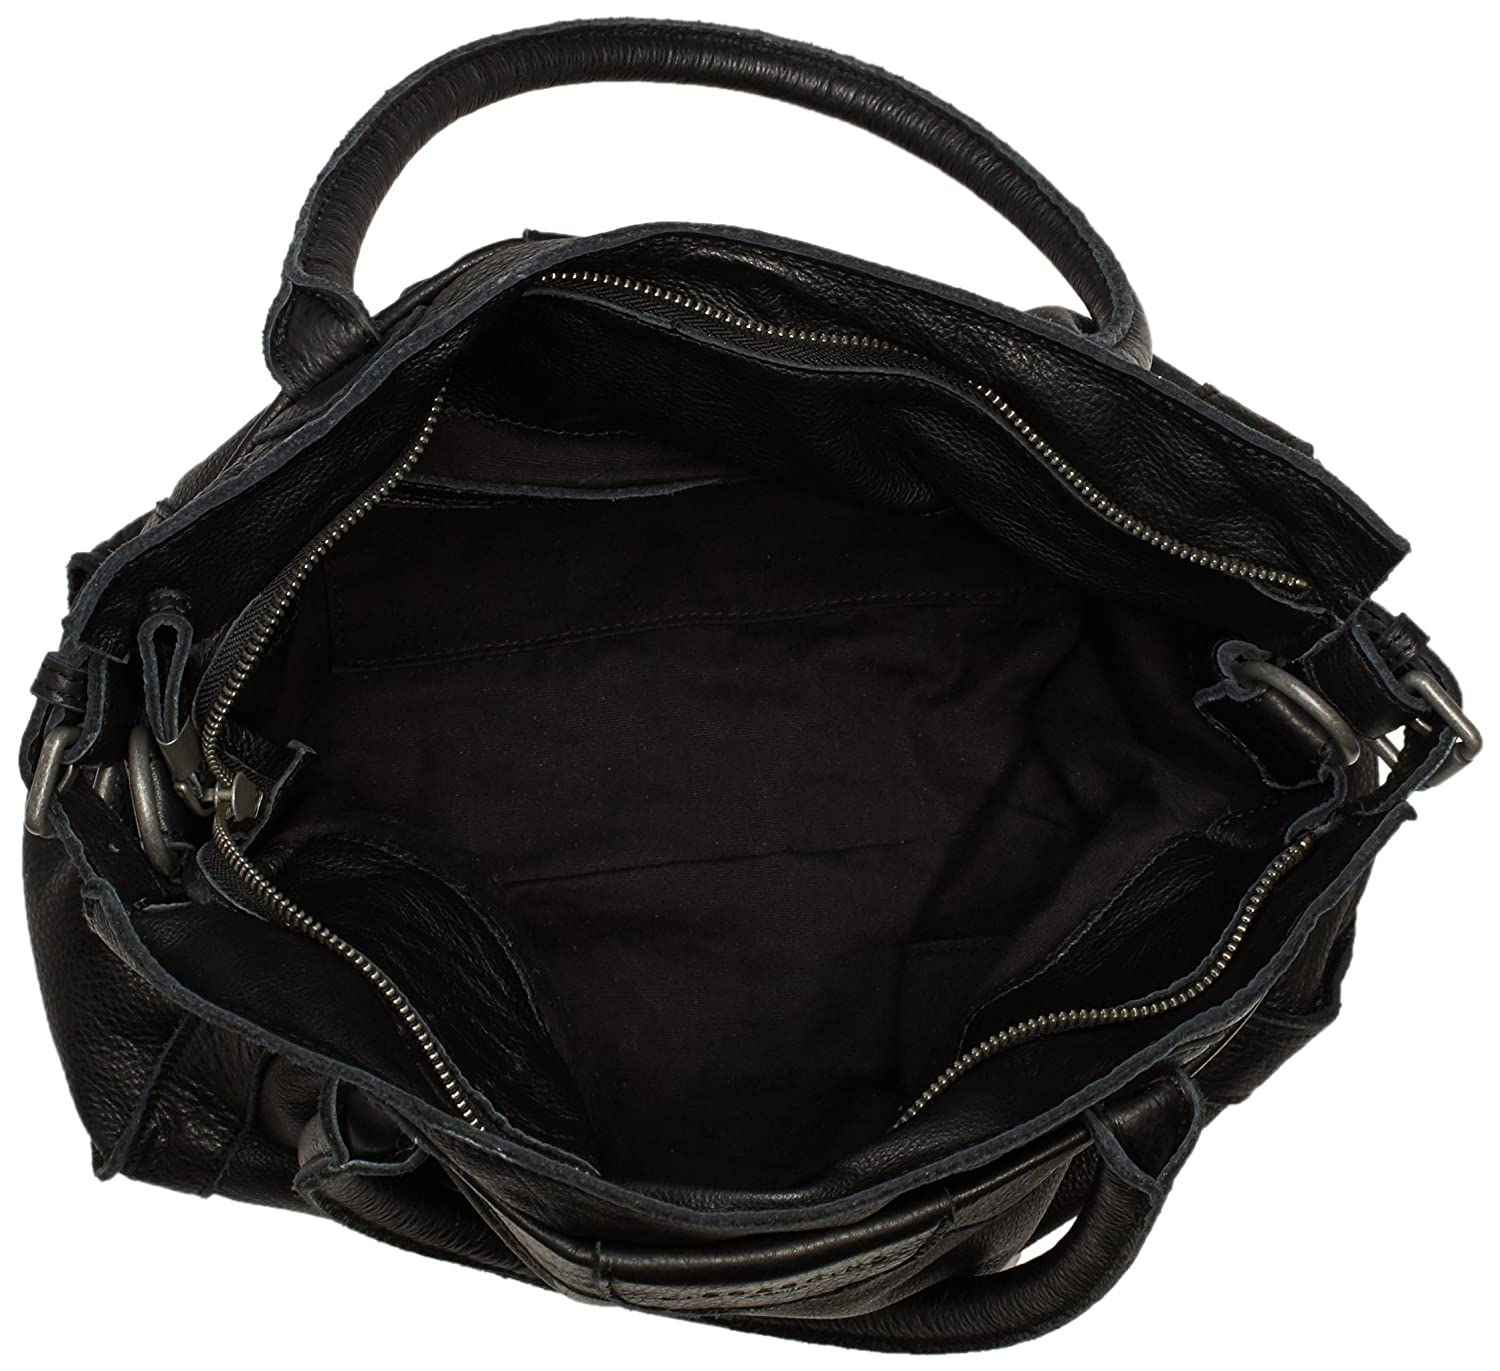 Liebeskind Berlin Women s Glory vintage Top-Handle Bag Black Schwarz (black  0001)  Amazon.co.uk  Shoes   Bags b5aea209bfcf7